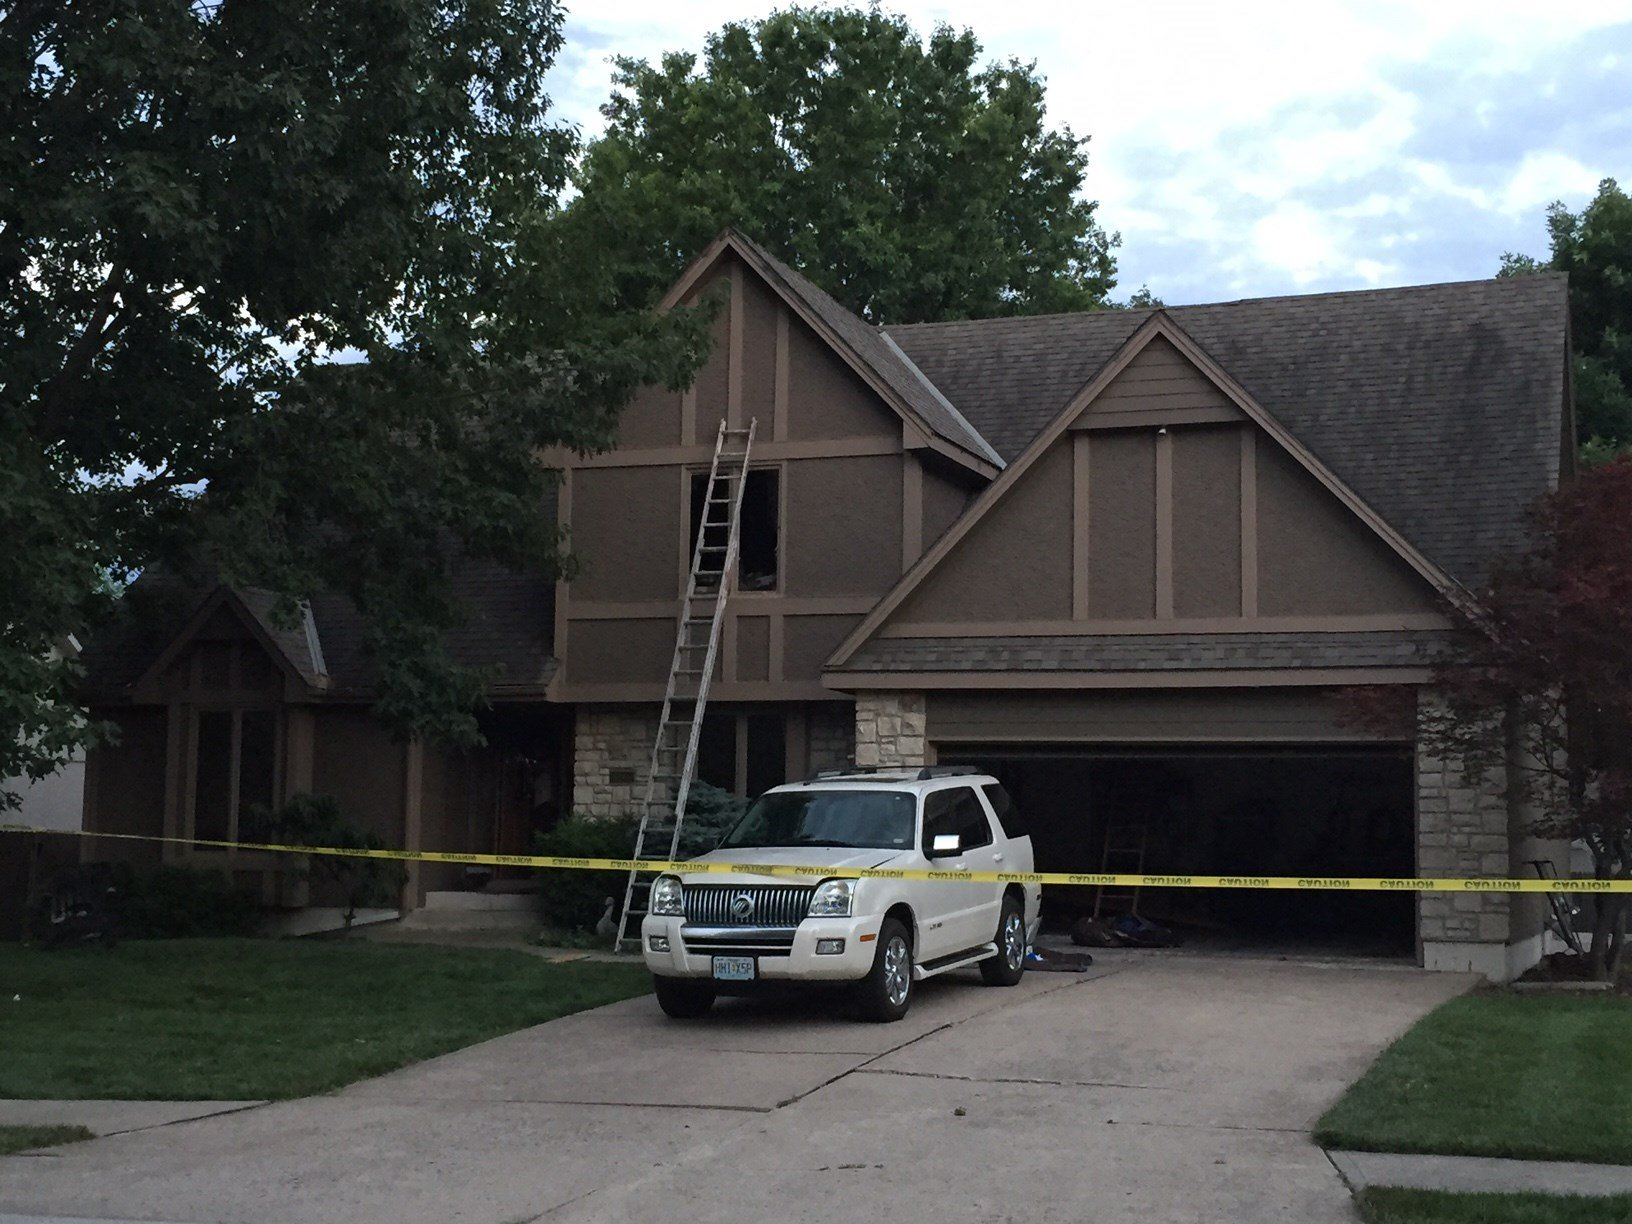 The house in Lee's Summit was set on fire after a burglary in order to destroy evidence of the crime, according to authorities. (KCTV)